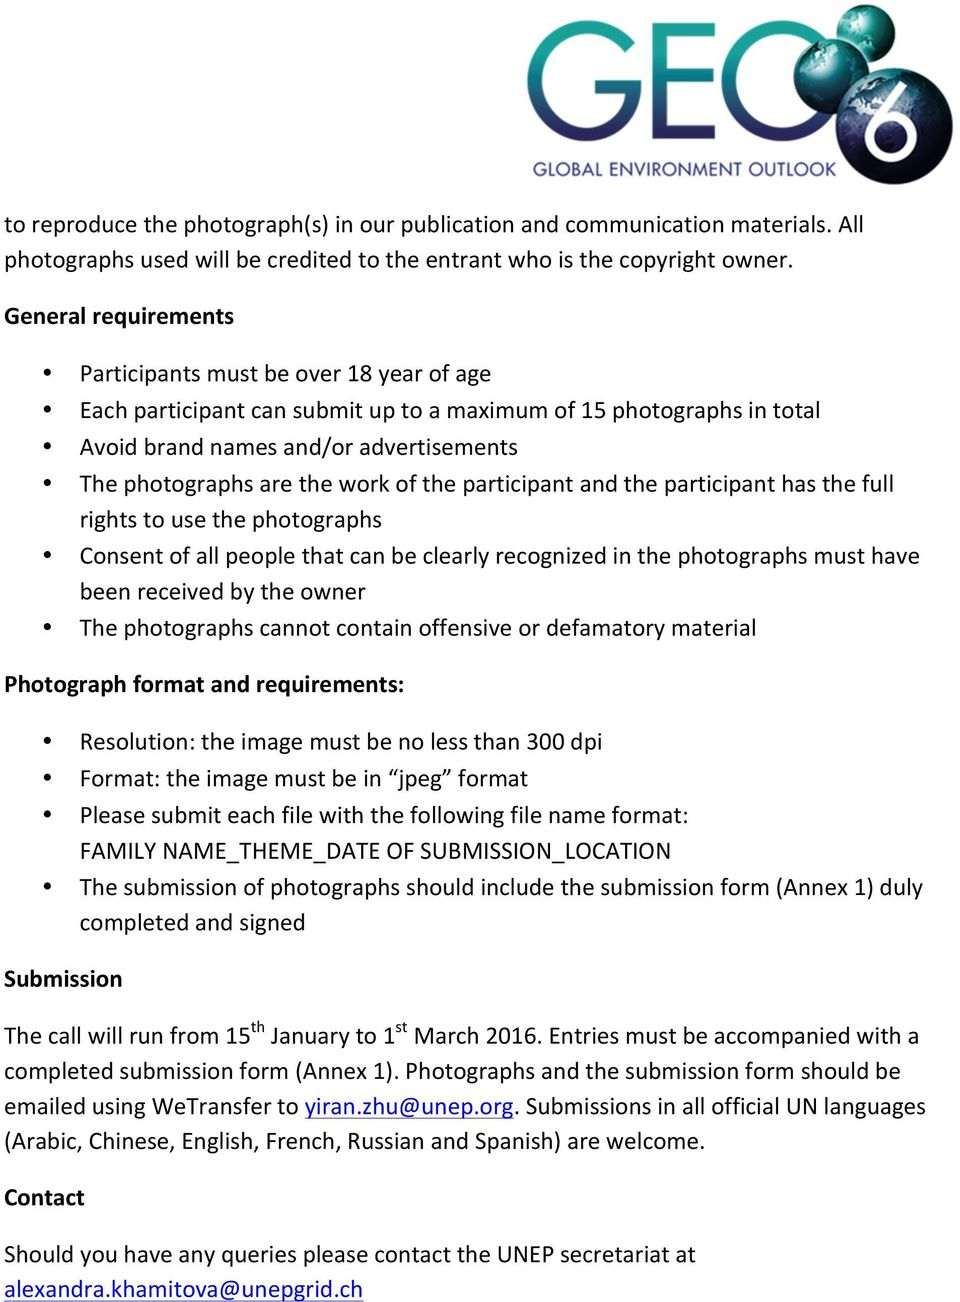 work of the participant and the participant has the full rights to use the photographs Consent of all people that can be clearly recognized in the photographs must have been received by the owner The